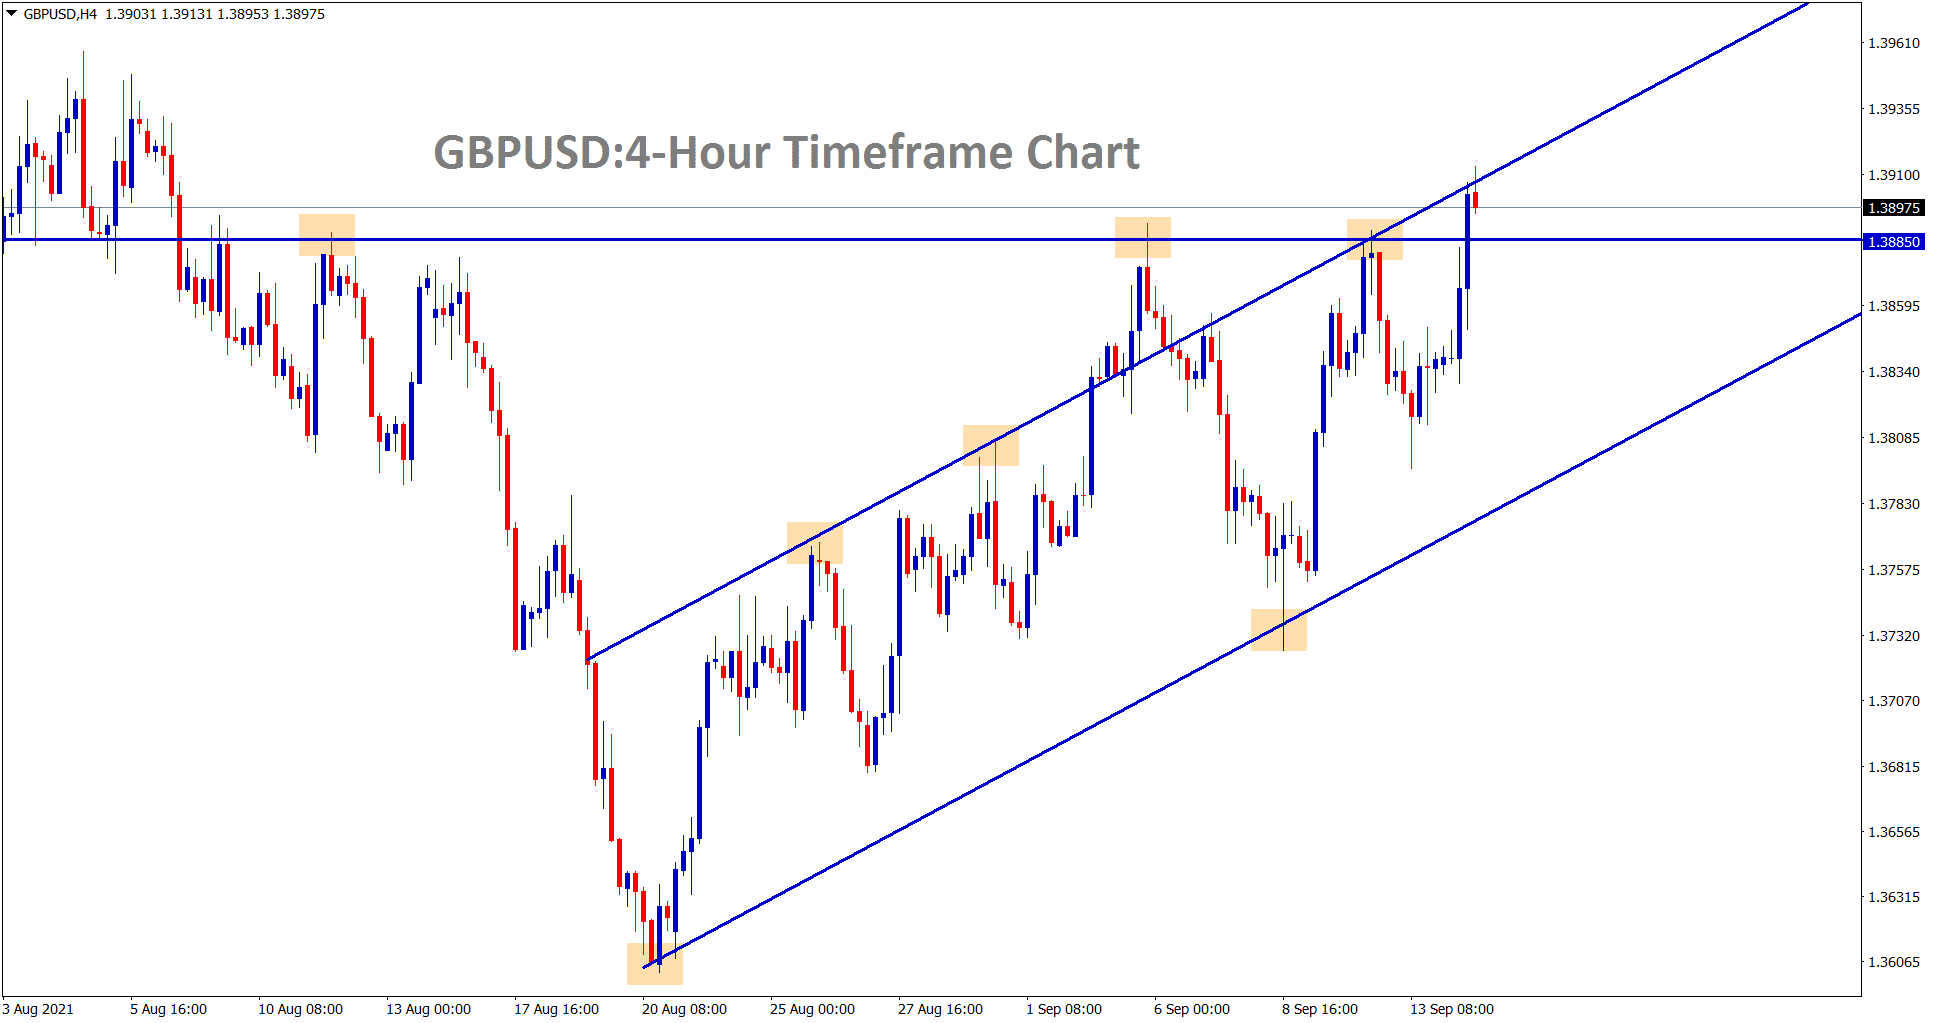 GBPUSD hits the higher high level of the ascending channel line